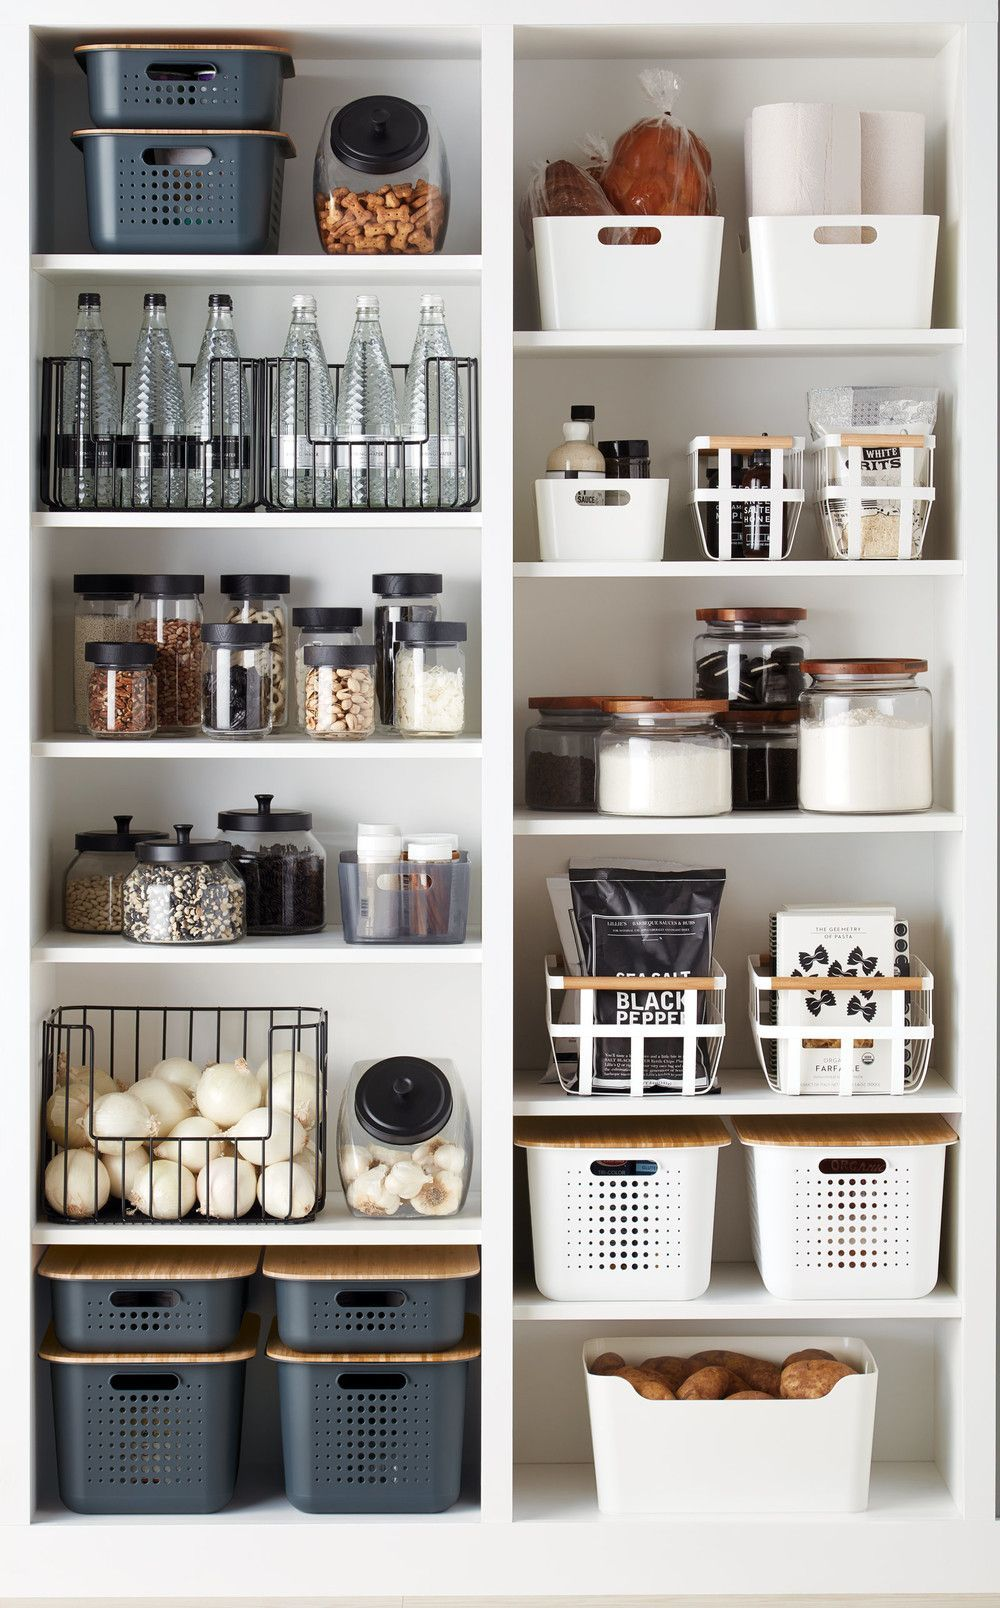 7 Easy Tips for Organizing Your Pantry – The Wild Decoelis